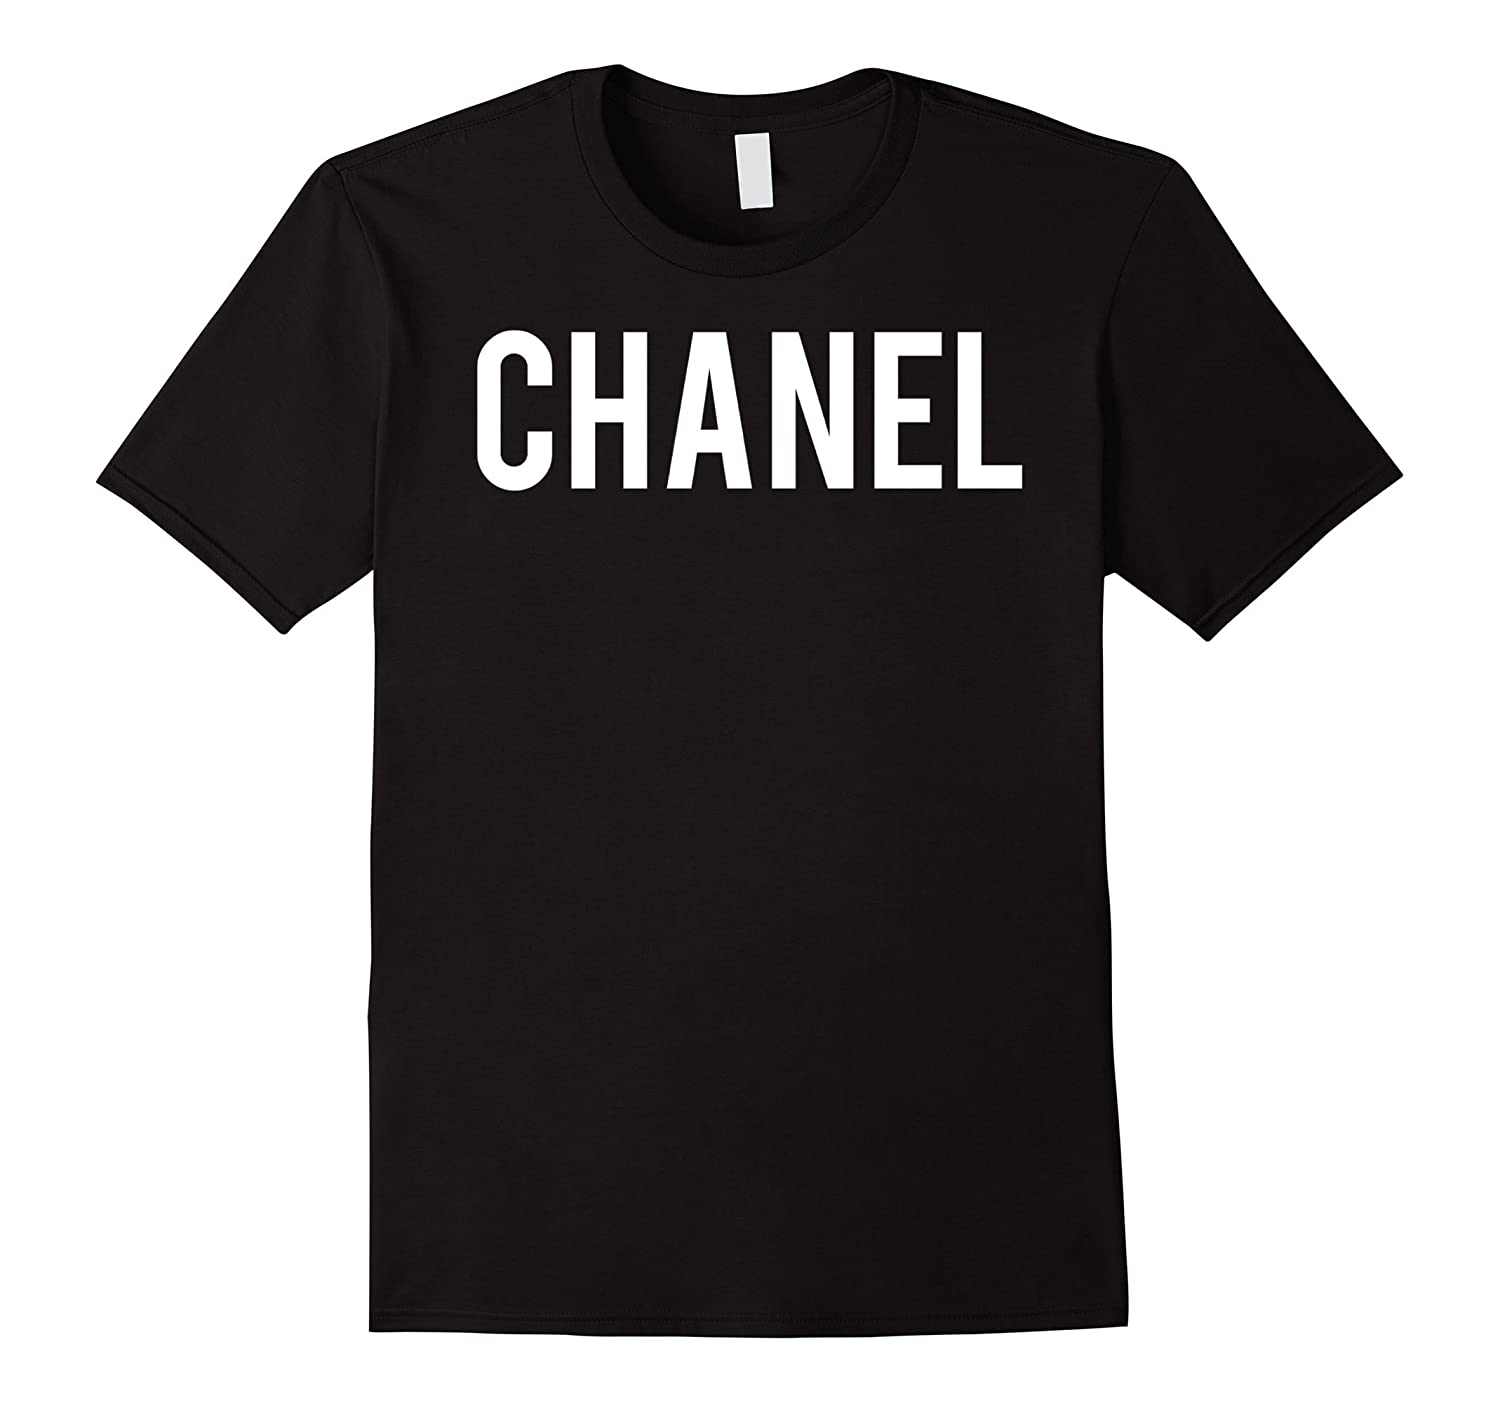 93c560c92220 ... chanel t shirt cool new funny name fan gift tee cl colamaga ...